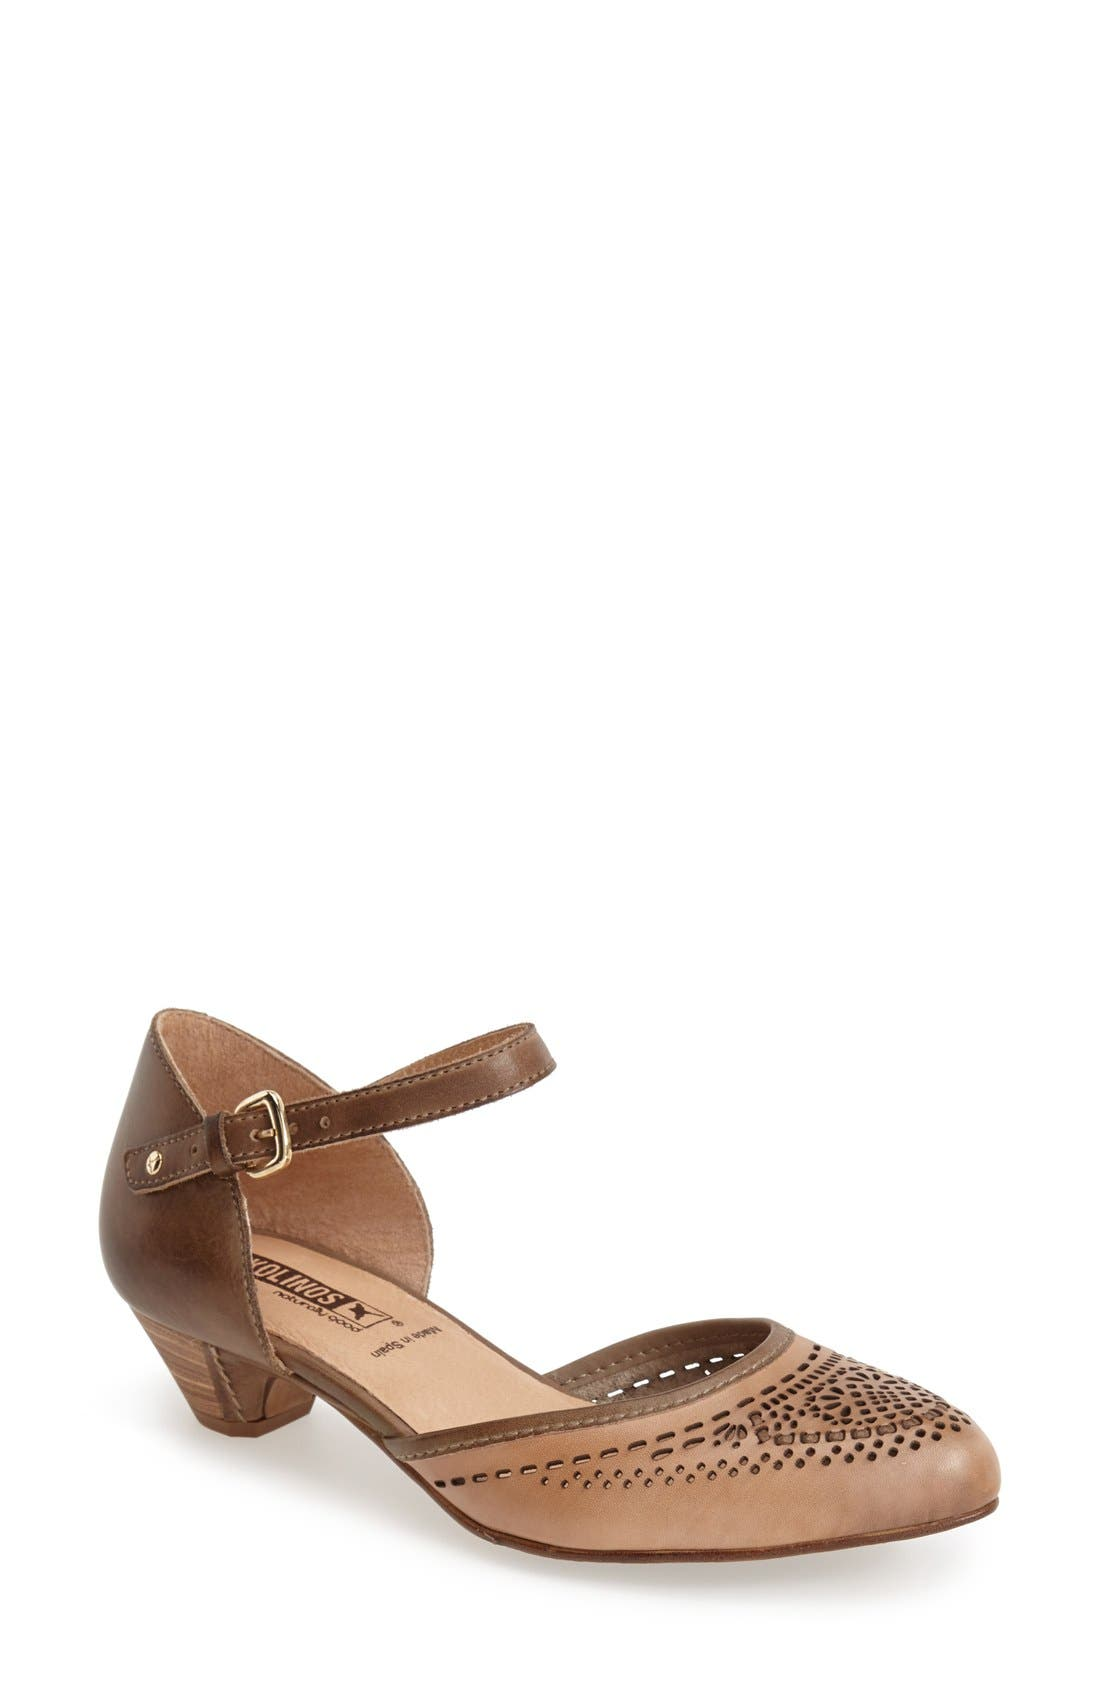 'Elba' Perforated Leather Ankle Strap Sandal,                         Main,                         color,